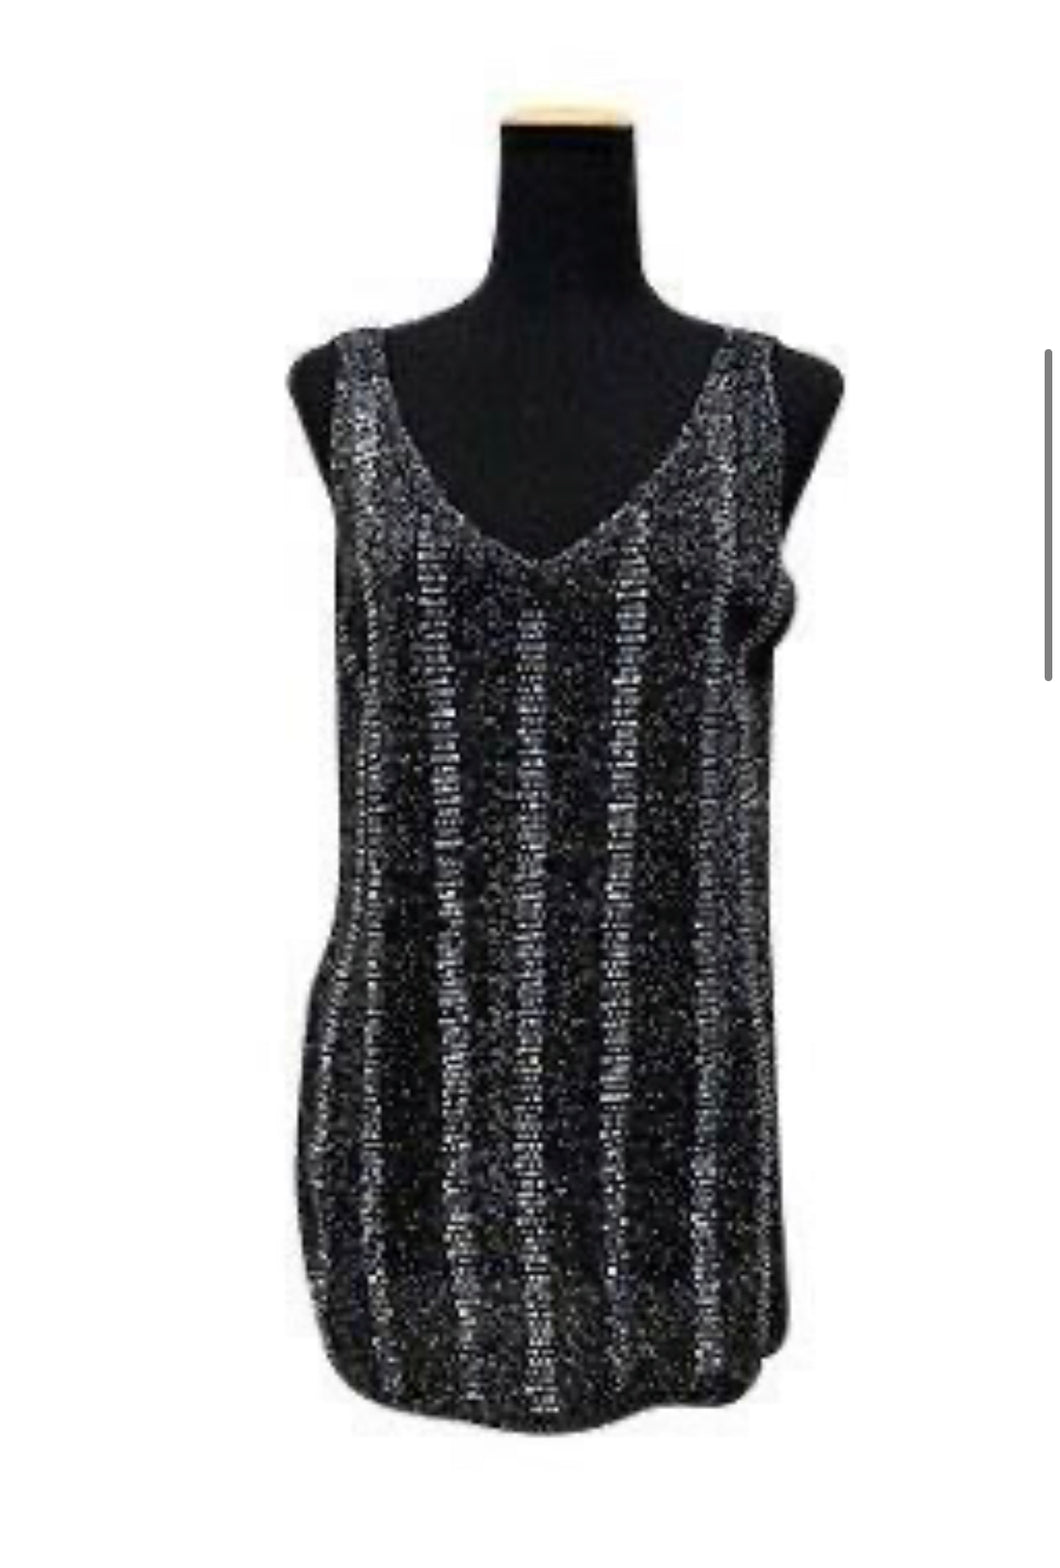 Black Bling Tank Stripes